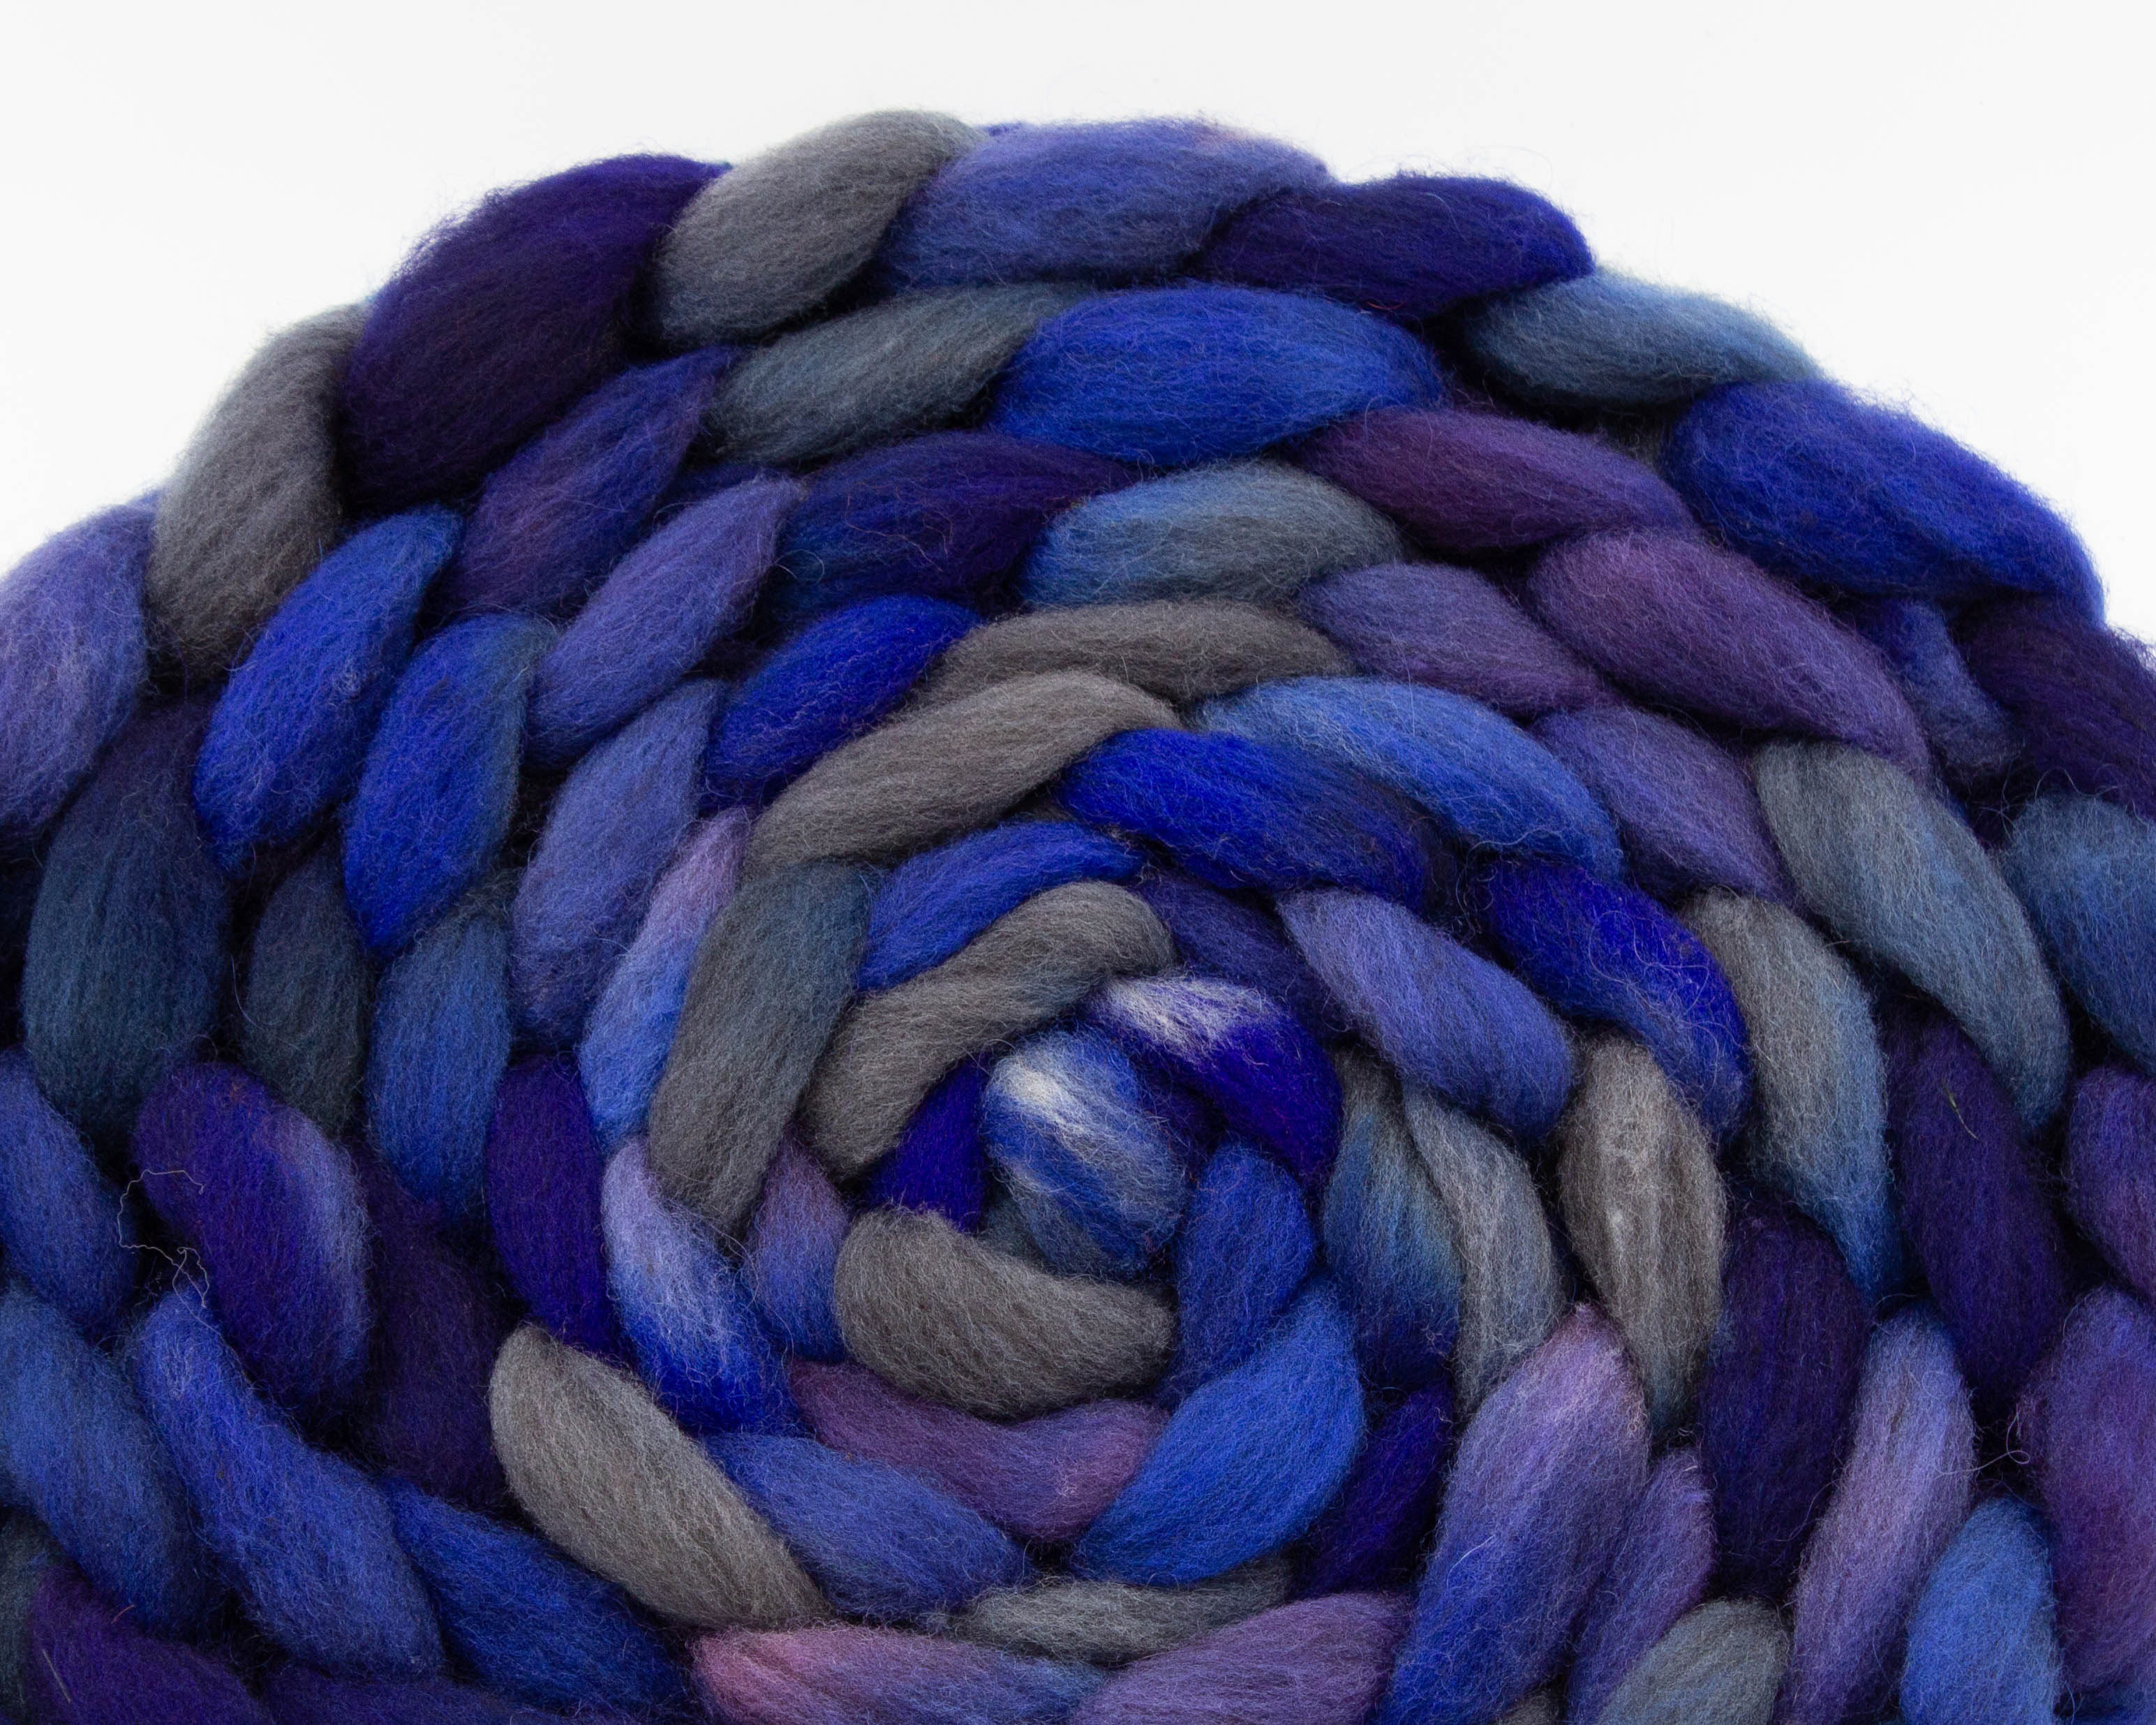 braided CVM/Cormo roving -blue, grey, and lavender